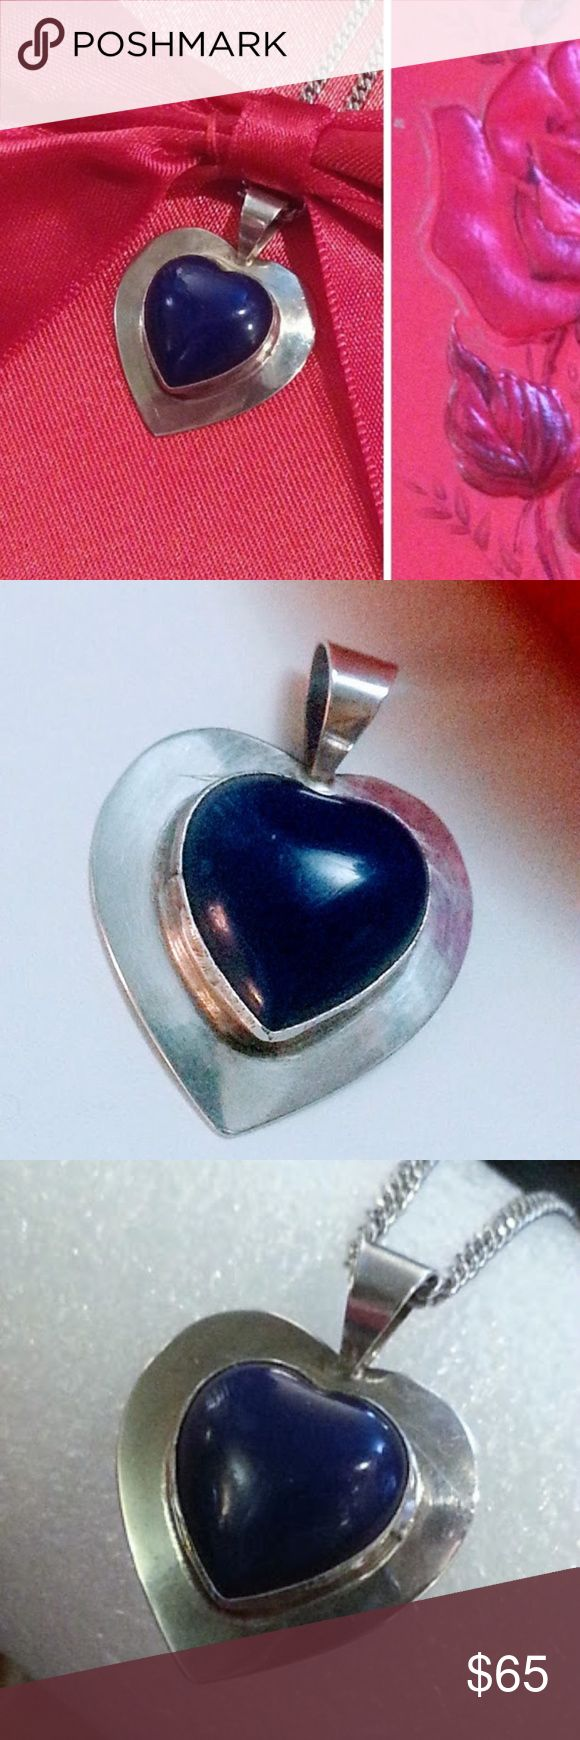 Vintage sterling & blue bakelite heart pendant EVC A darling choice for a Velentine's Day gift!!  Vintage pendant in the shape of a heart with a carved heart shape piece of blue bakelite in the center. Sweet & somewhat reminiscent of the WW2 era, for some reason. I see Navy when I look at this. In excellent vintage condition  The listing is for the pendant only, if you need/want a chain, sterling or silver plated, let me know. I have several for sale and can create a listing for you to look…